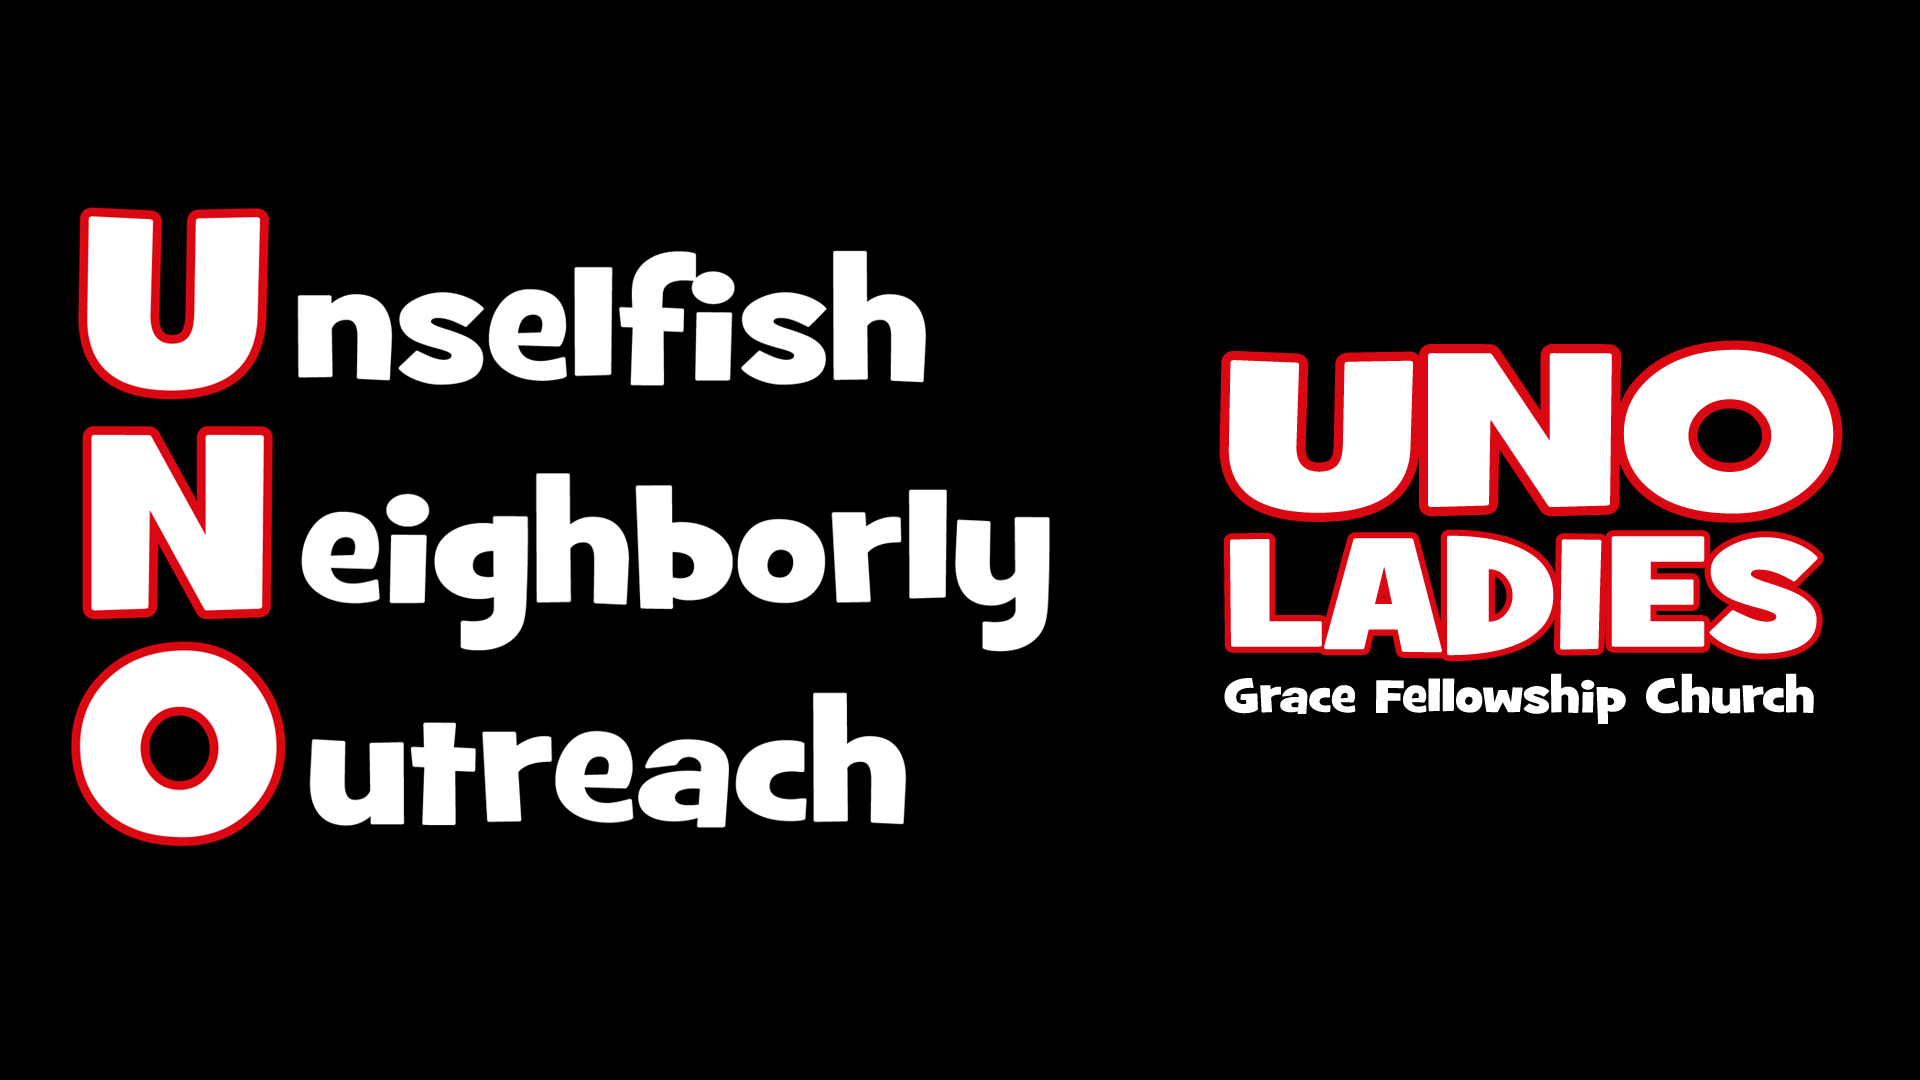 "UNO Ladies - A fellowship for Adult Women, the UNO Ladies' focus is ""Unselfish Neighborly Outreach"". They meet in the Grace Hall every Thursday from 12-2 PM."